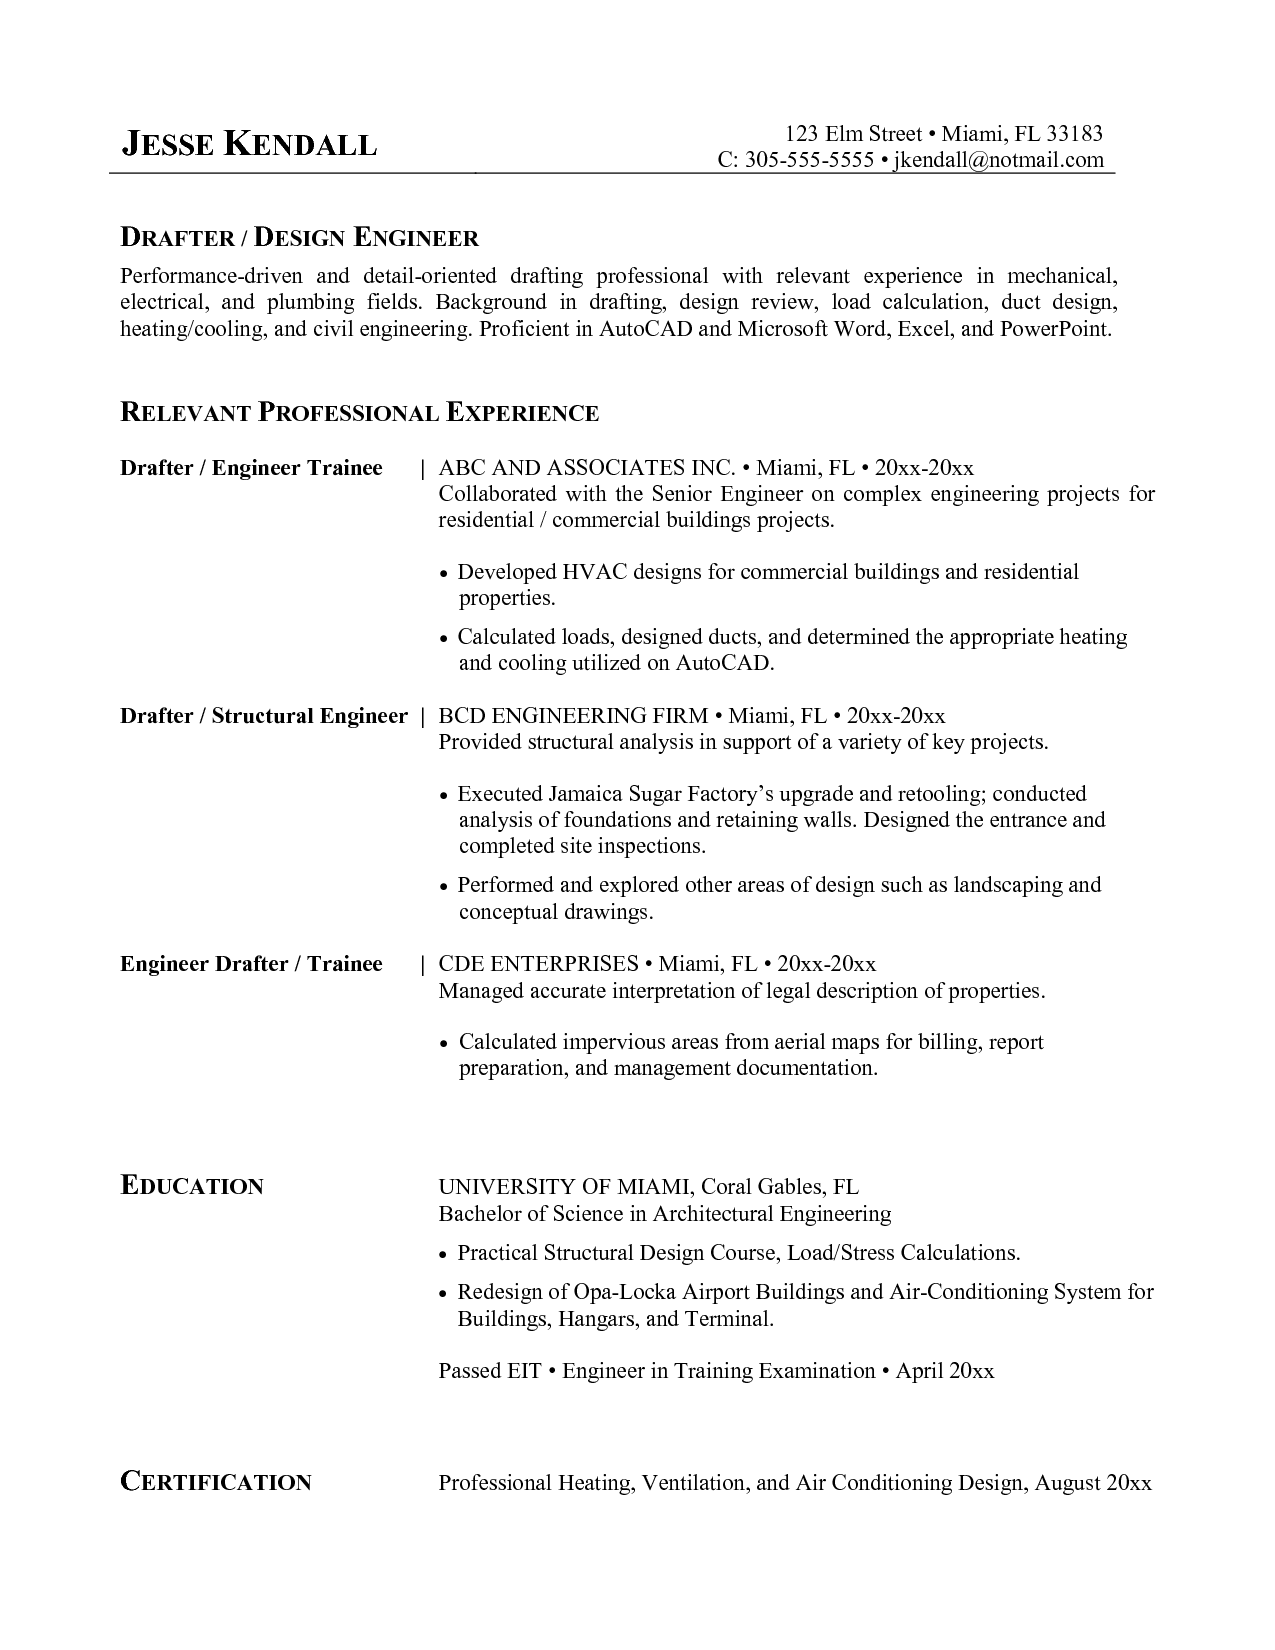 Resume Format For Design Engineer In Mechanical Great Hvac Resume Sample Hvac Resume Samples Templates